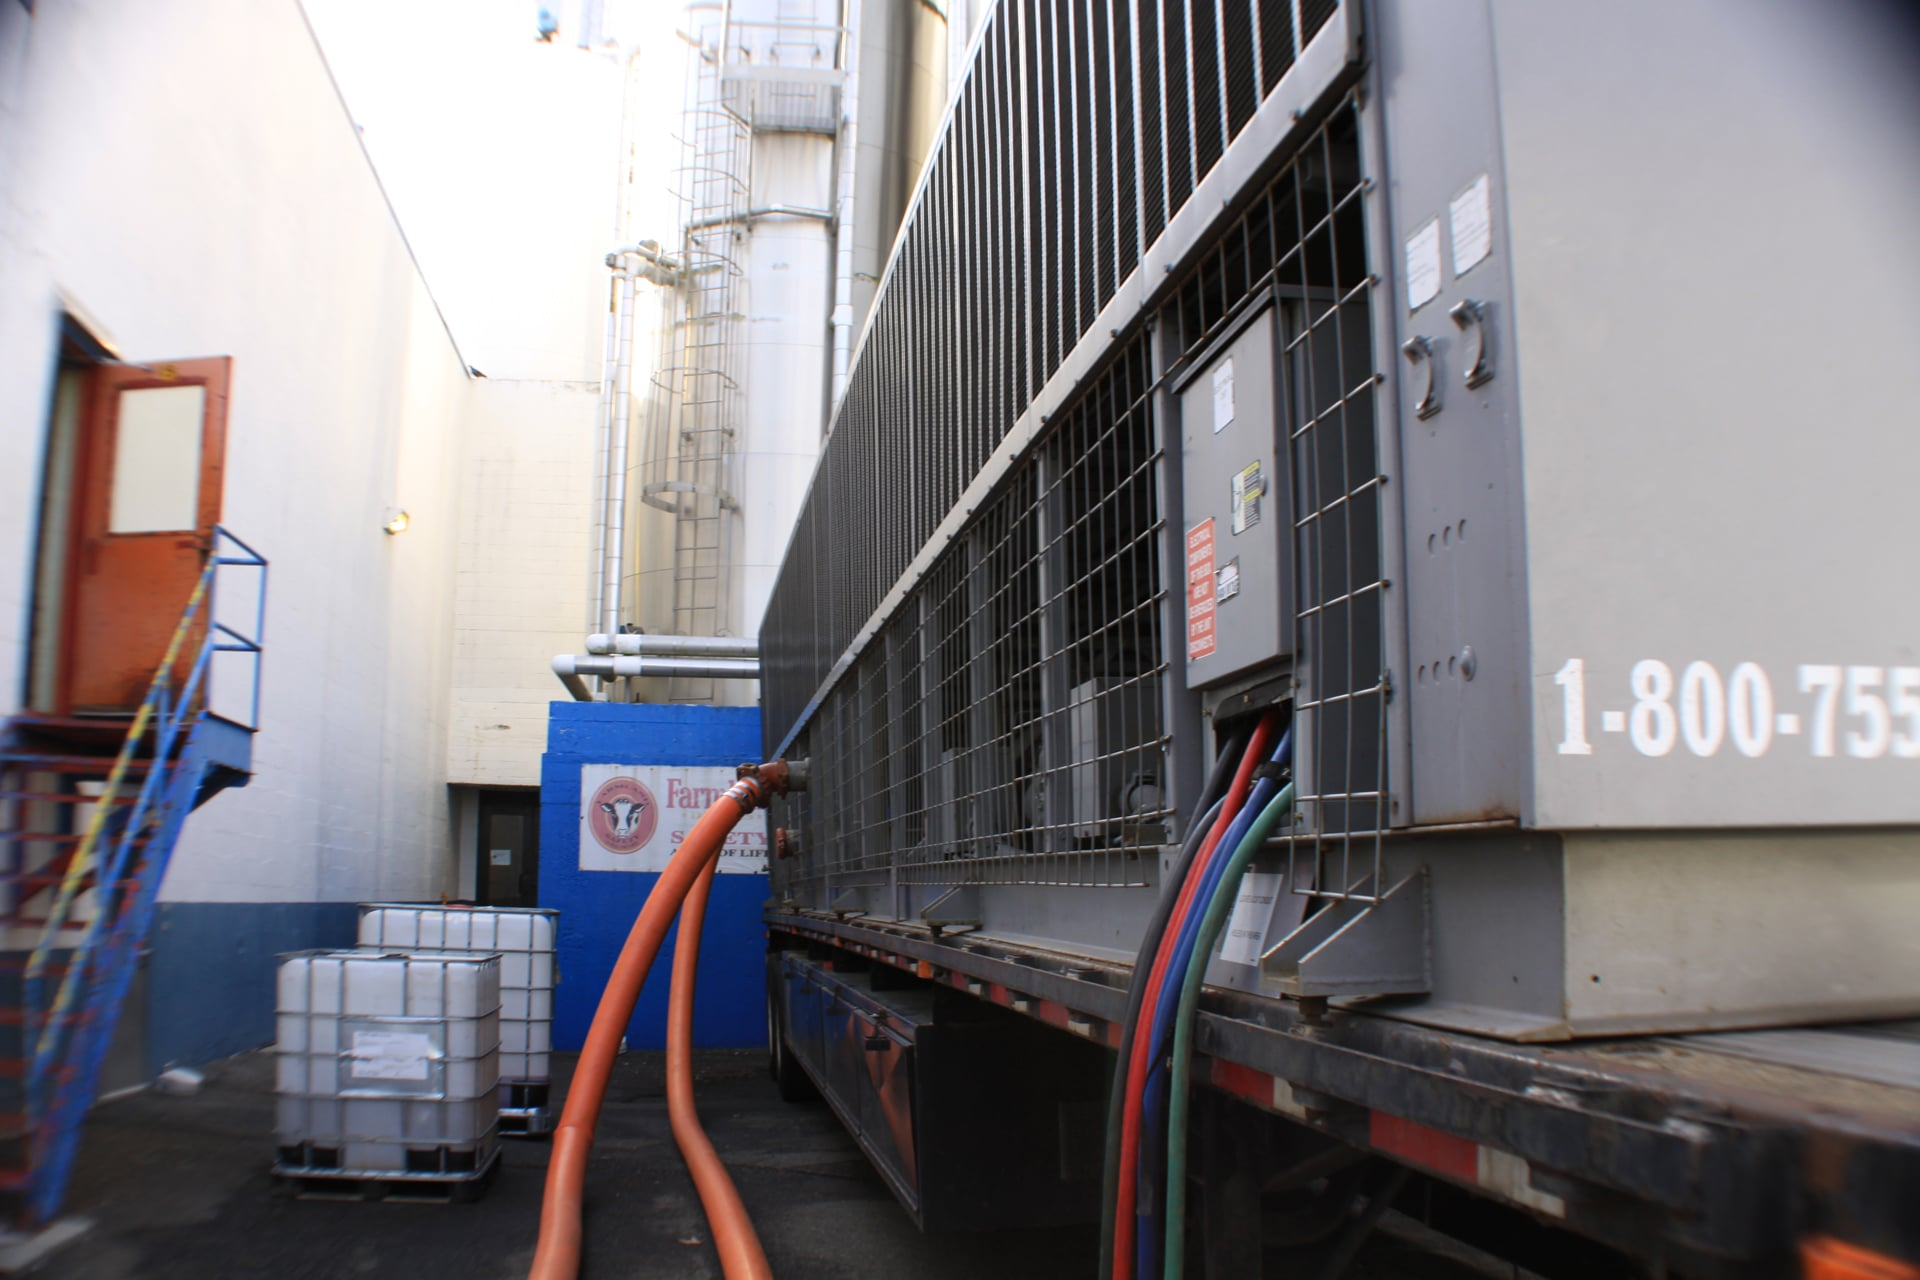 Temporary Chiller Queens County NY, Air Cooled Chiller Rental Queens County NY